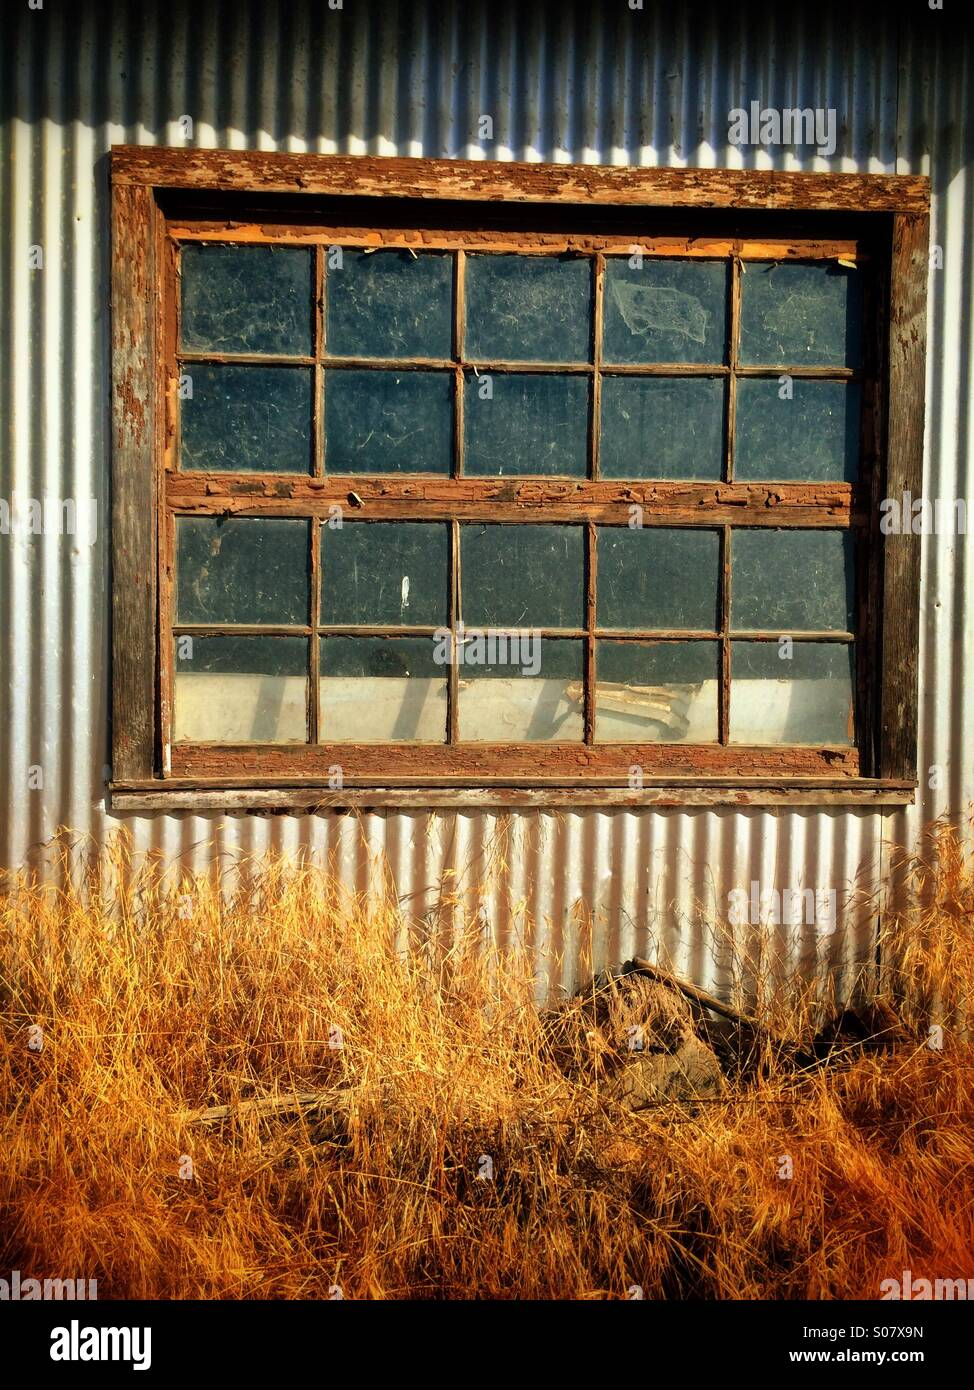 Corrugated metal building stock photos corrugated metal building an old window on a corrugated metal building stock image sciox Image collections